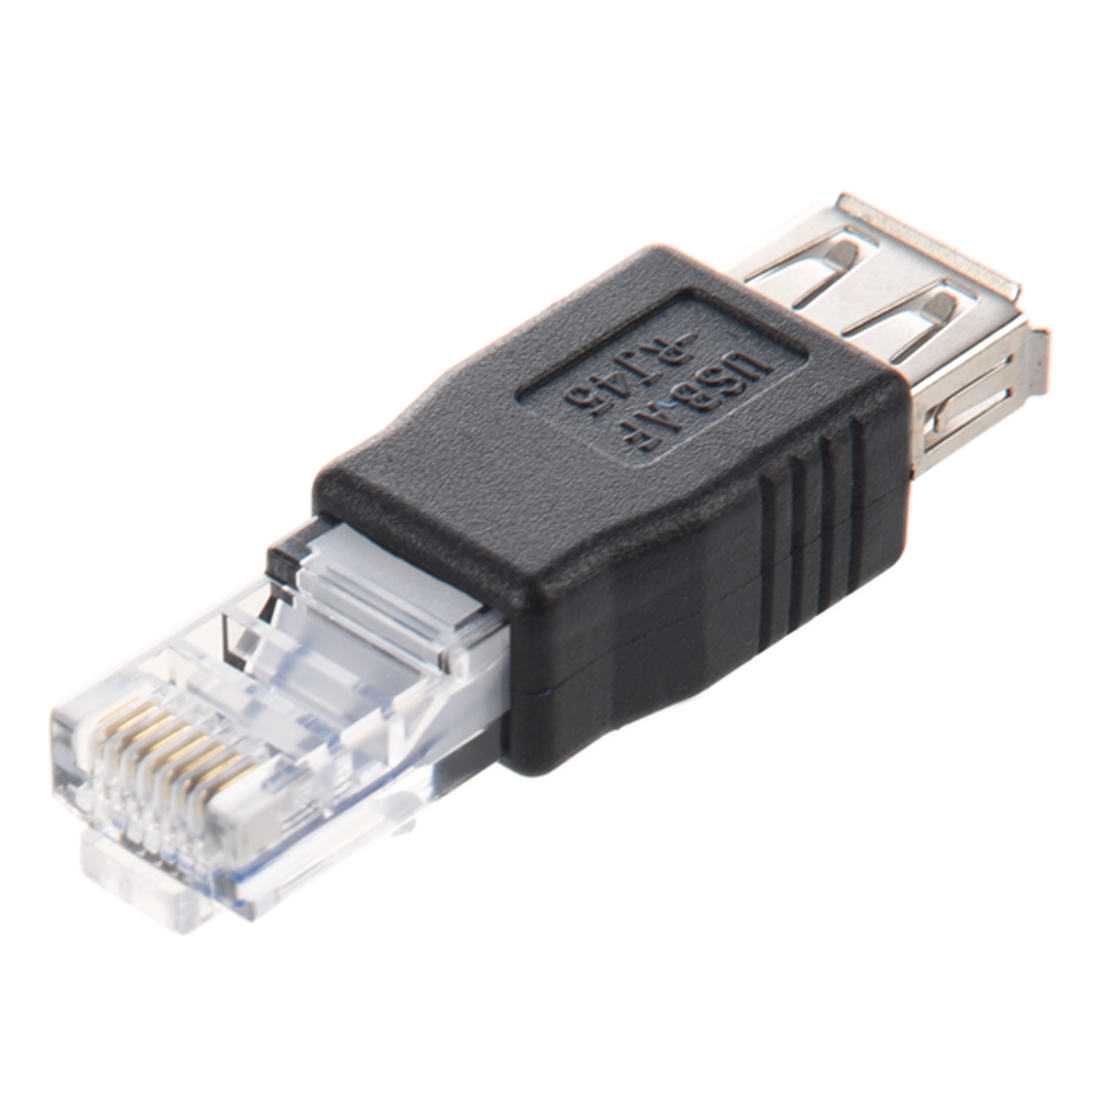 Usb Female To Rj45 Male Wiring Diagram Electrical Diagrams Sodialr 2 Pieces Ethernet Connector Cable